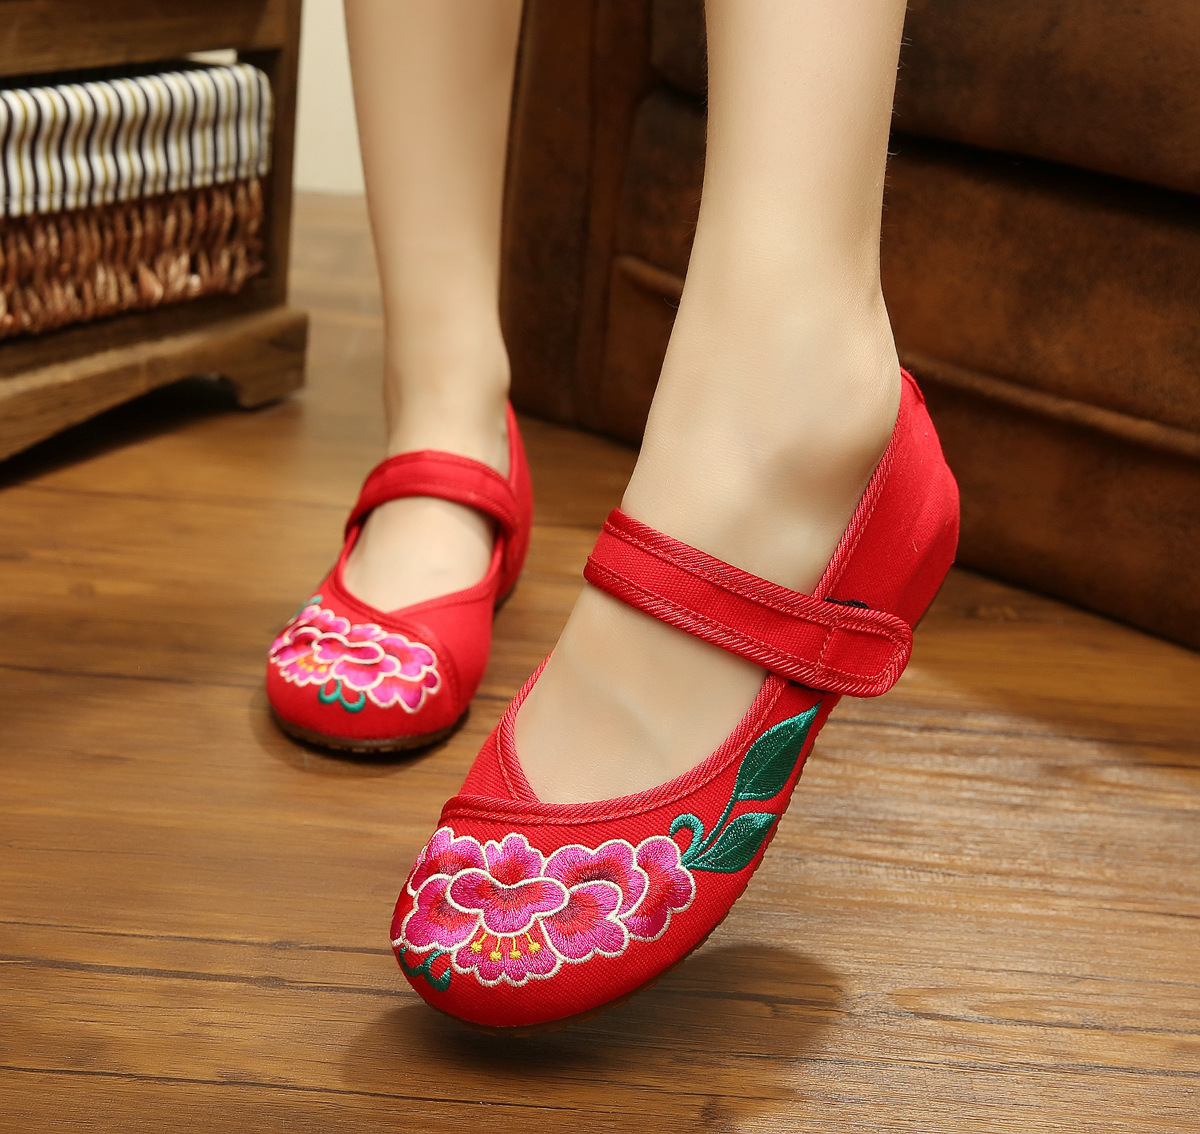 Black Sexy Peony Embroidery WomenS Flats Cow Muscle And Soft Bottom Casual Walking Comfort Shoes,Dance Shoes SMYXHX-10142<br><br>Aliexpress